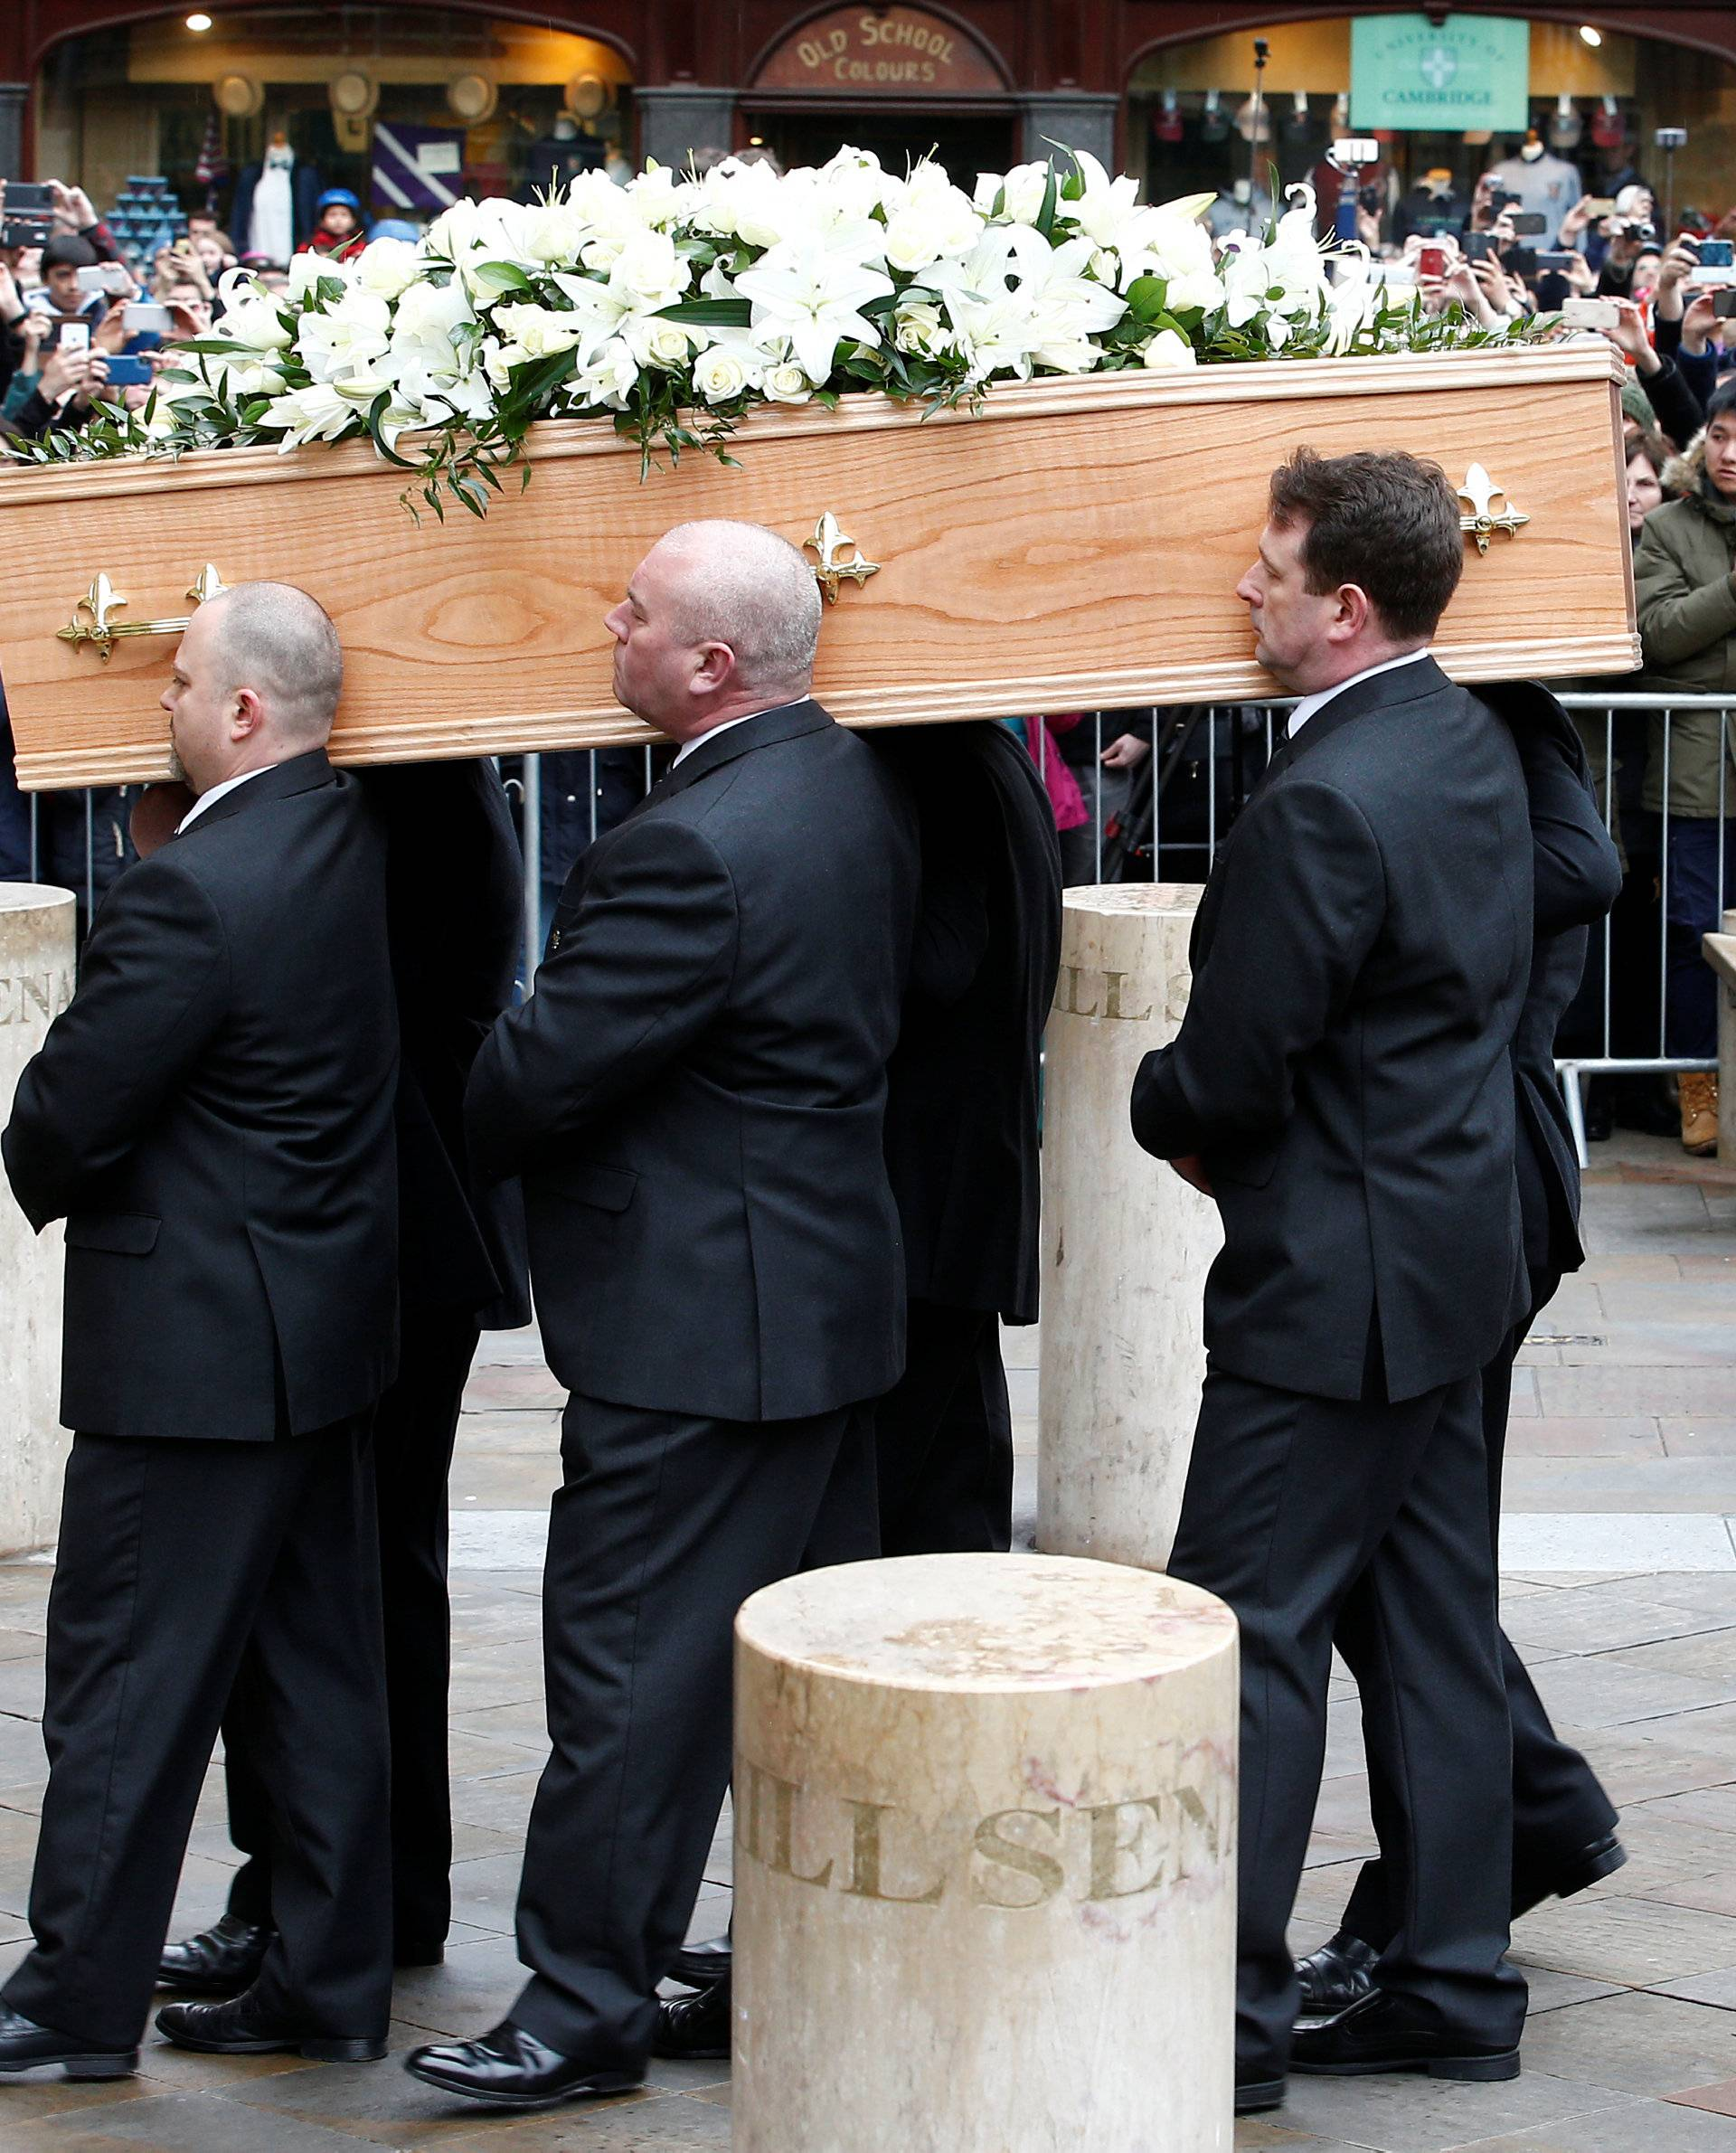 Pallbearers carry the coffin into Great St Marys Church, where the funeral of theoretical physicist Prof Stephen Hawking is being held, in Cambridge